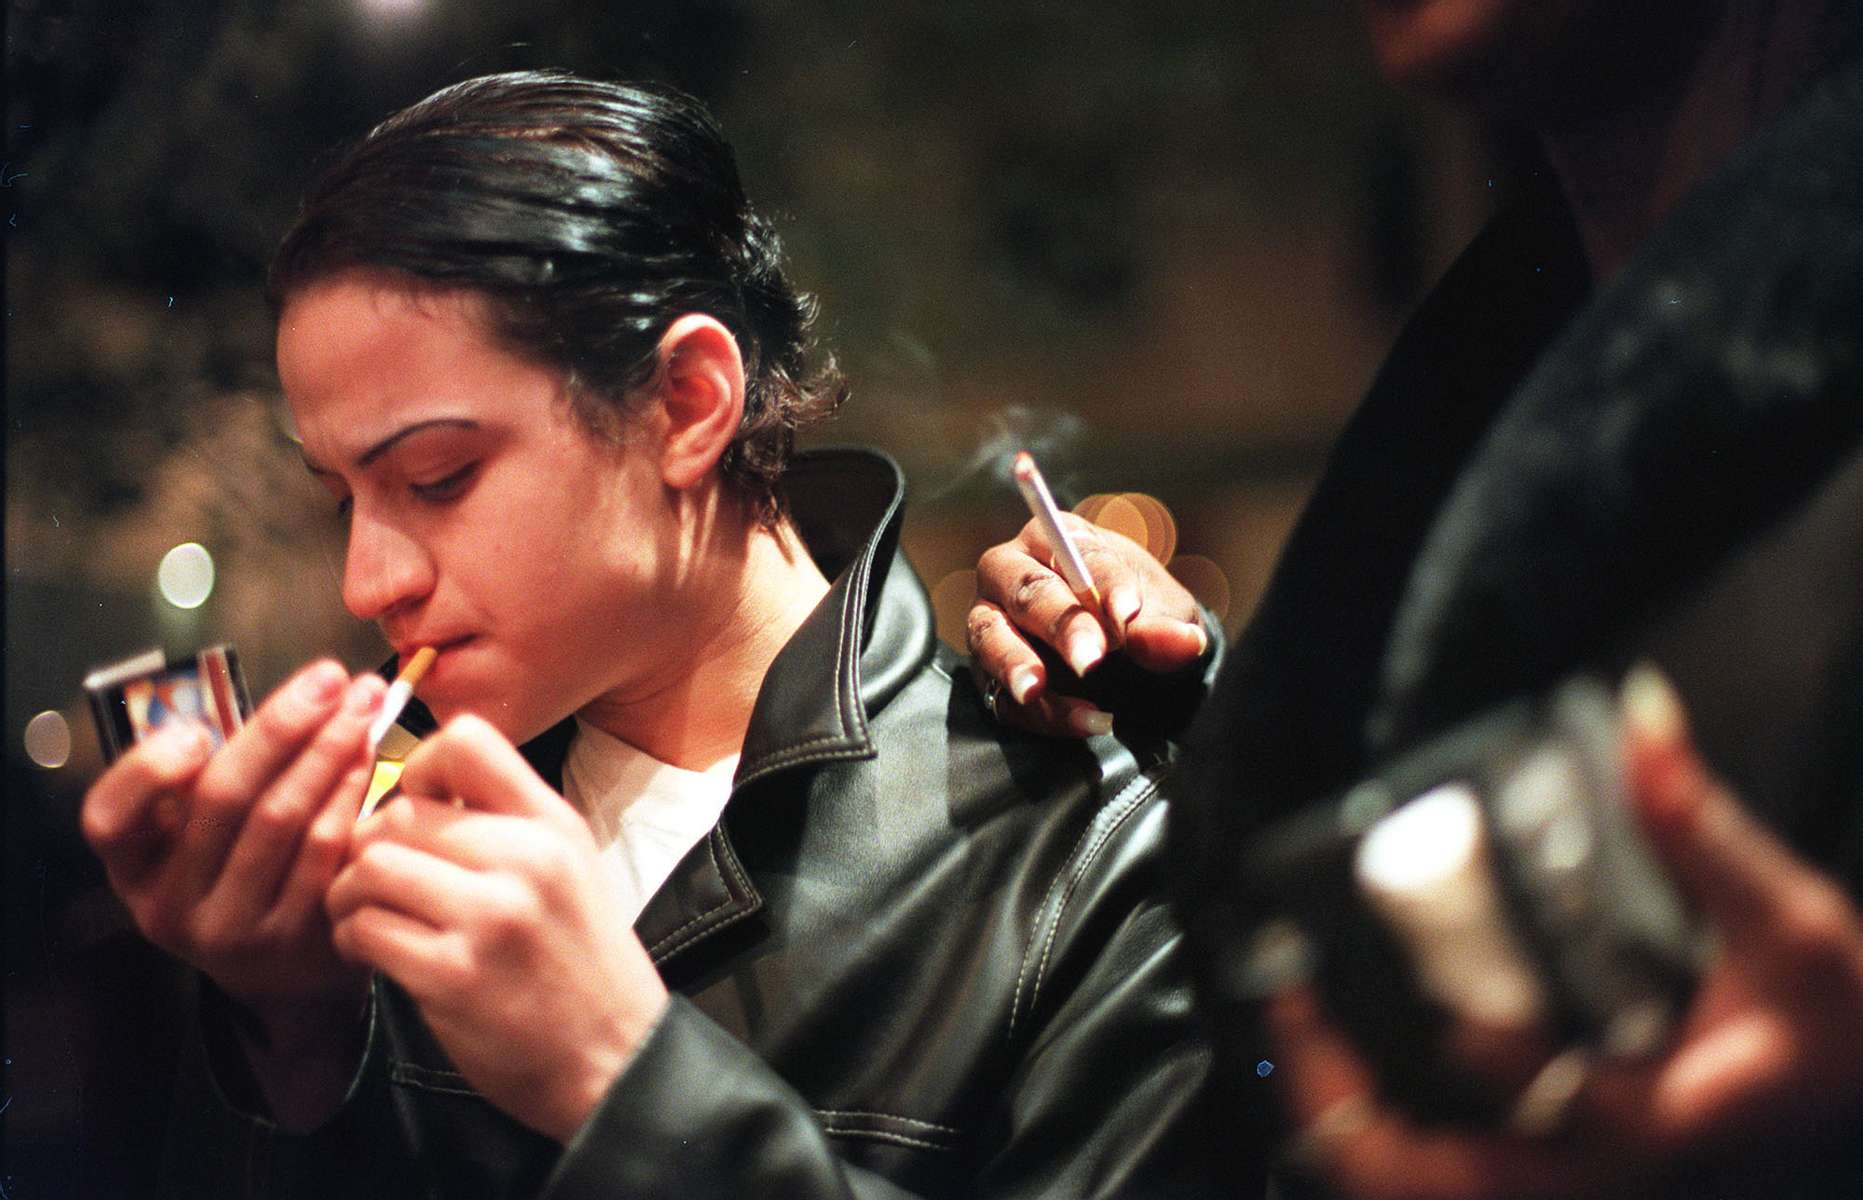 Jamie lights a cigarette while working  alongside Aurora in the West Village's Meat-packing district in New York, April 1999.  Jamie, at 14 years old, is one of the youngest sex worker and is gradually making the transition from male to female. Though Jamie always slicks his hair and plucks his eyebrows, he still wavers between dressing like a boy and a girl, and is quite influenced by the other trans women in the Village.